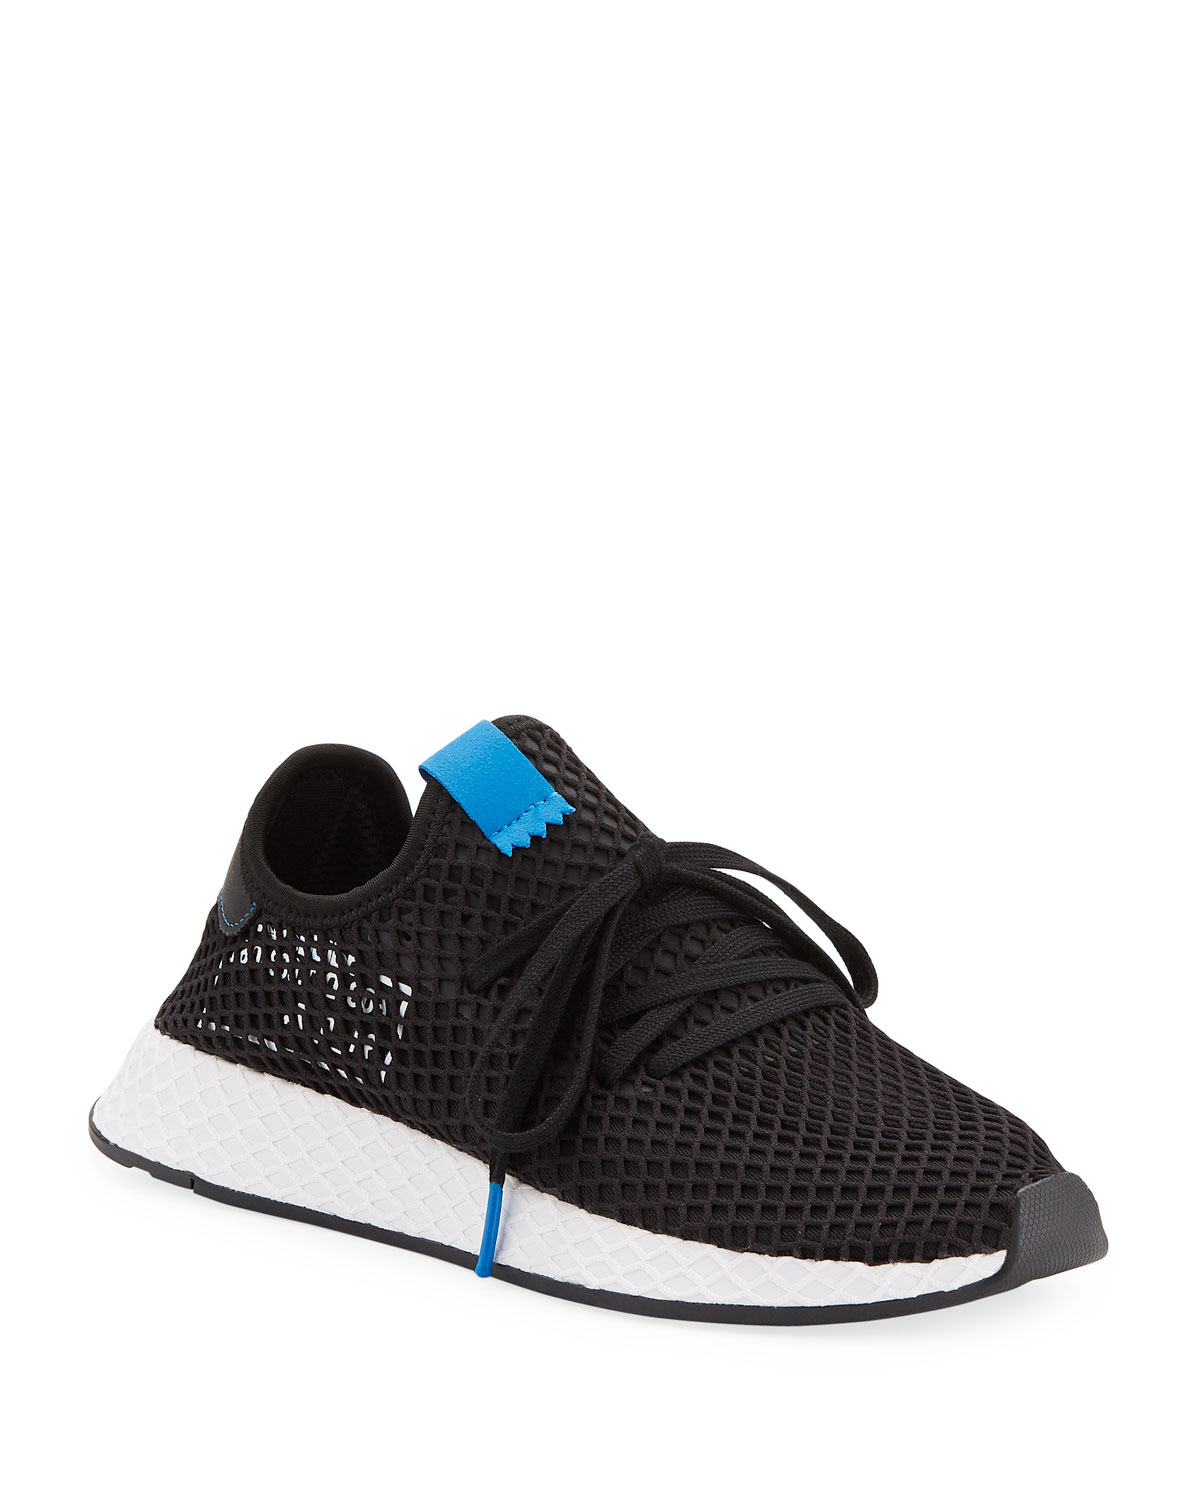 Adidas Men s Deerupt Runner Sneakers  057a8a9e6